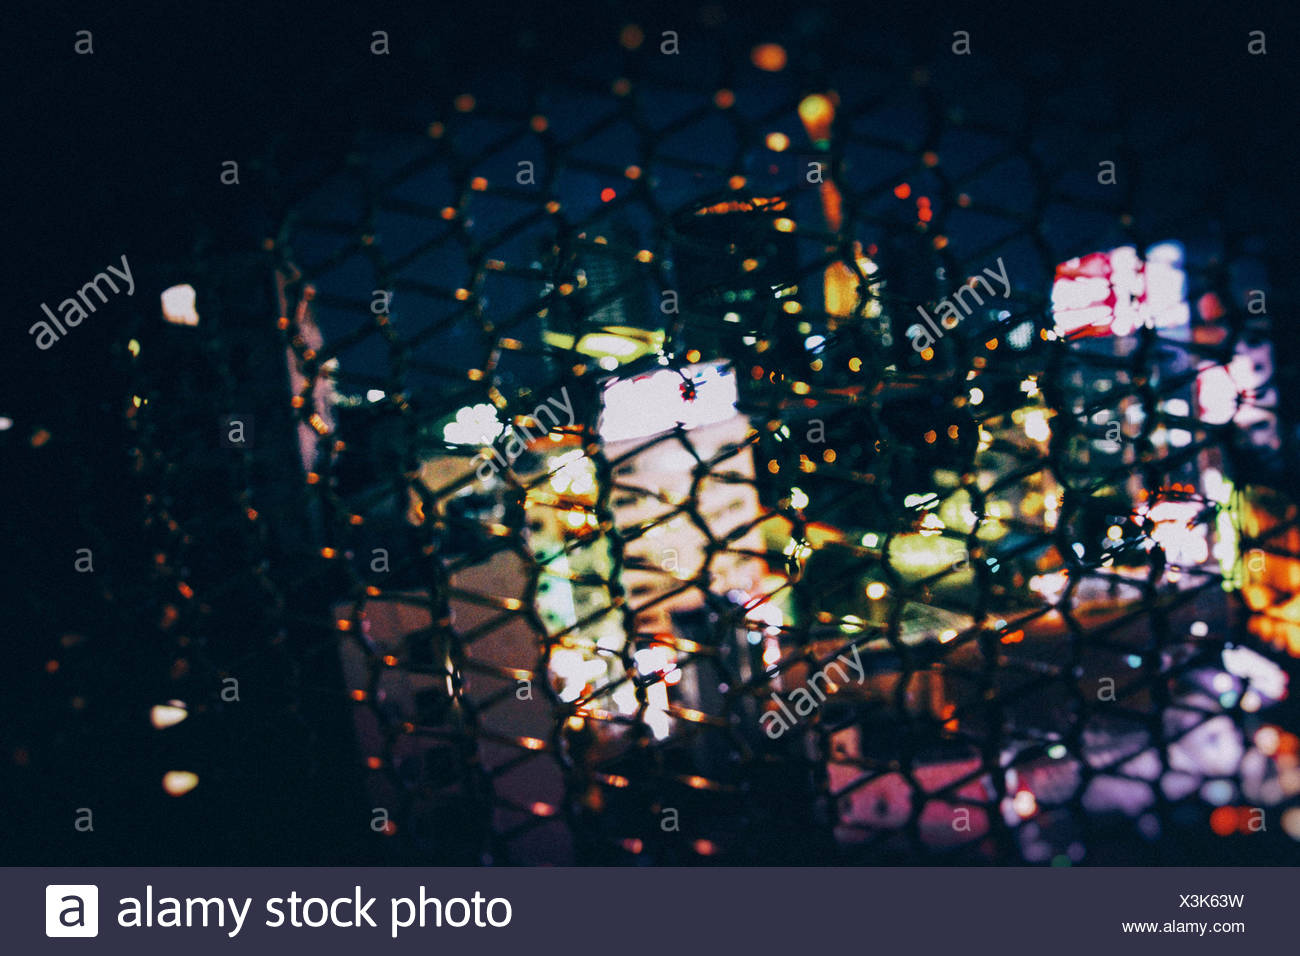 Close-Up Of Fence Against Blurred Background - Stock Image